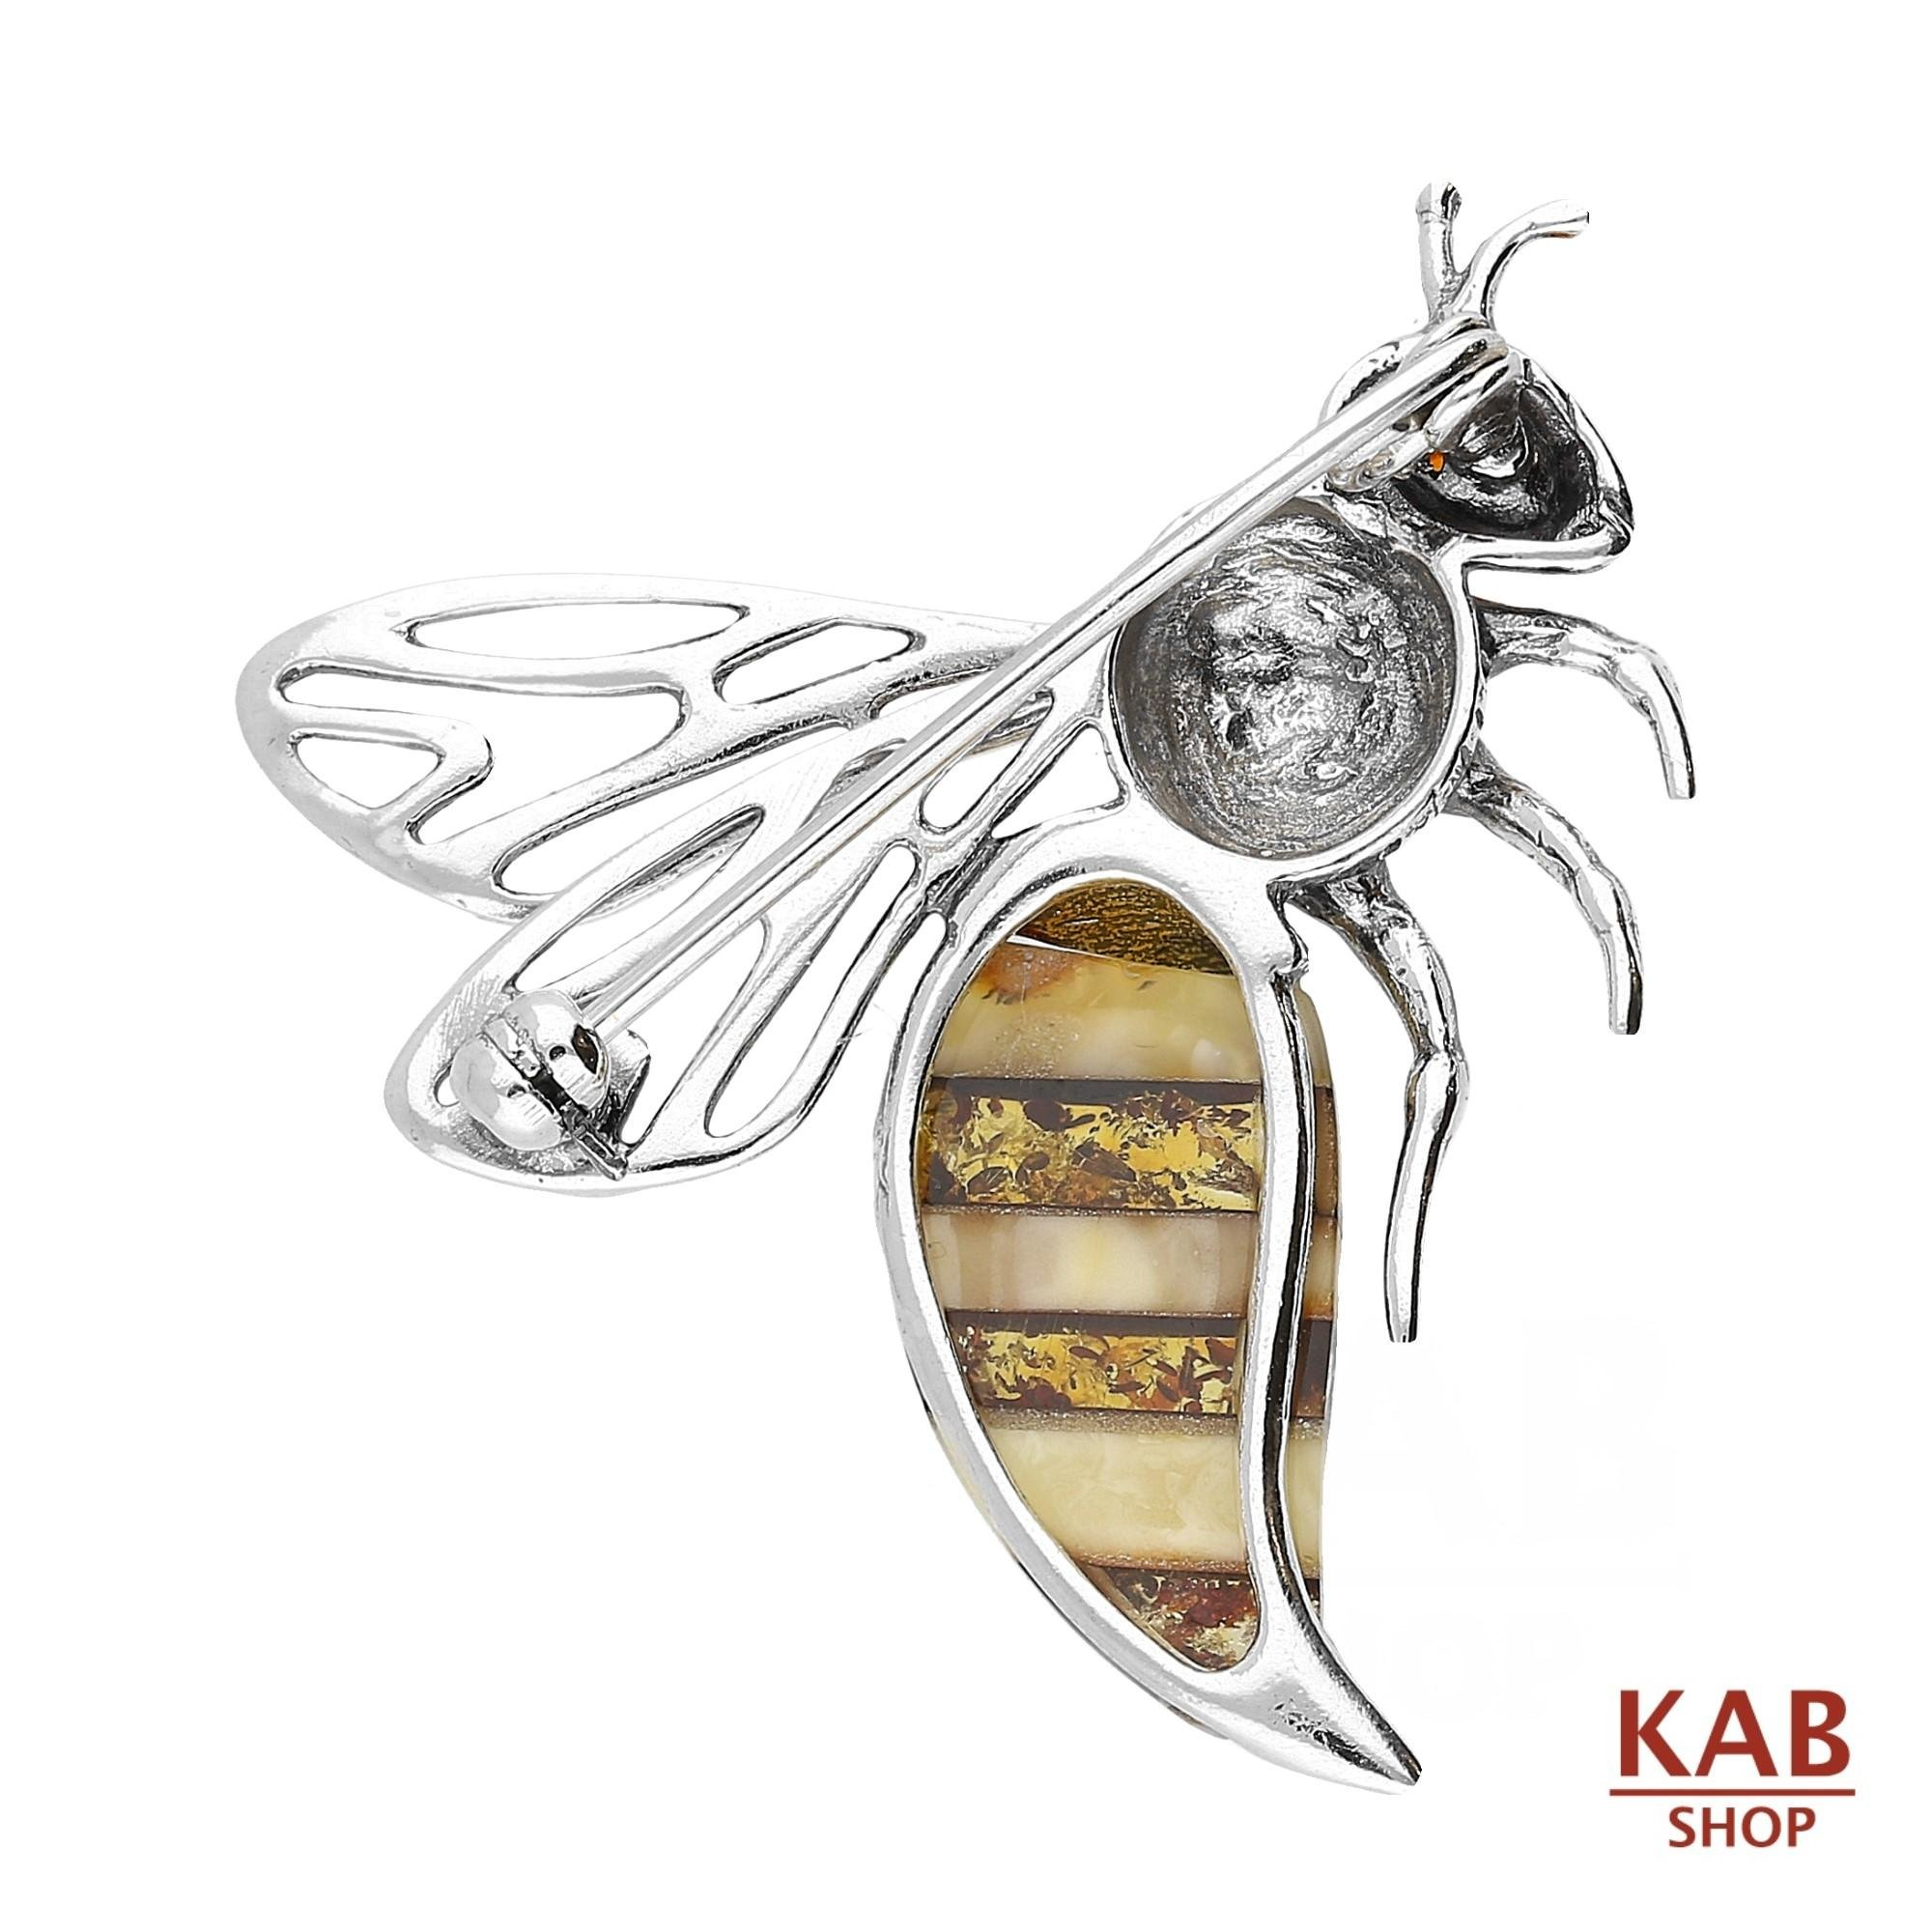 BALTIC AMBER STERLING SILVER 925 JEWELRY BEE BROOCH/PIN, KAB-166 by KAB (Image #2)